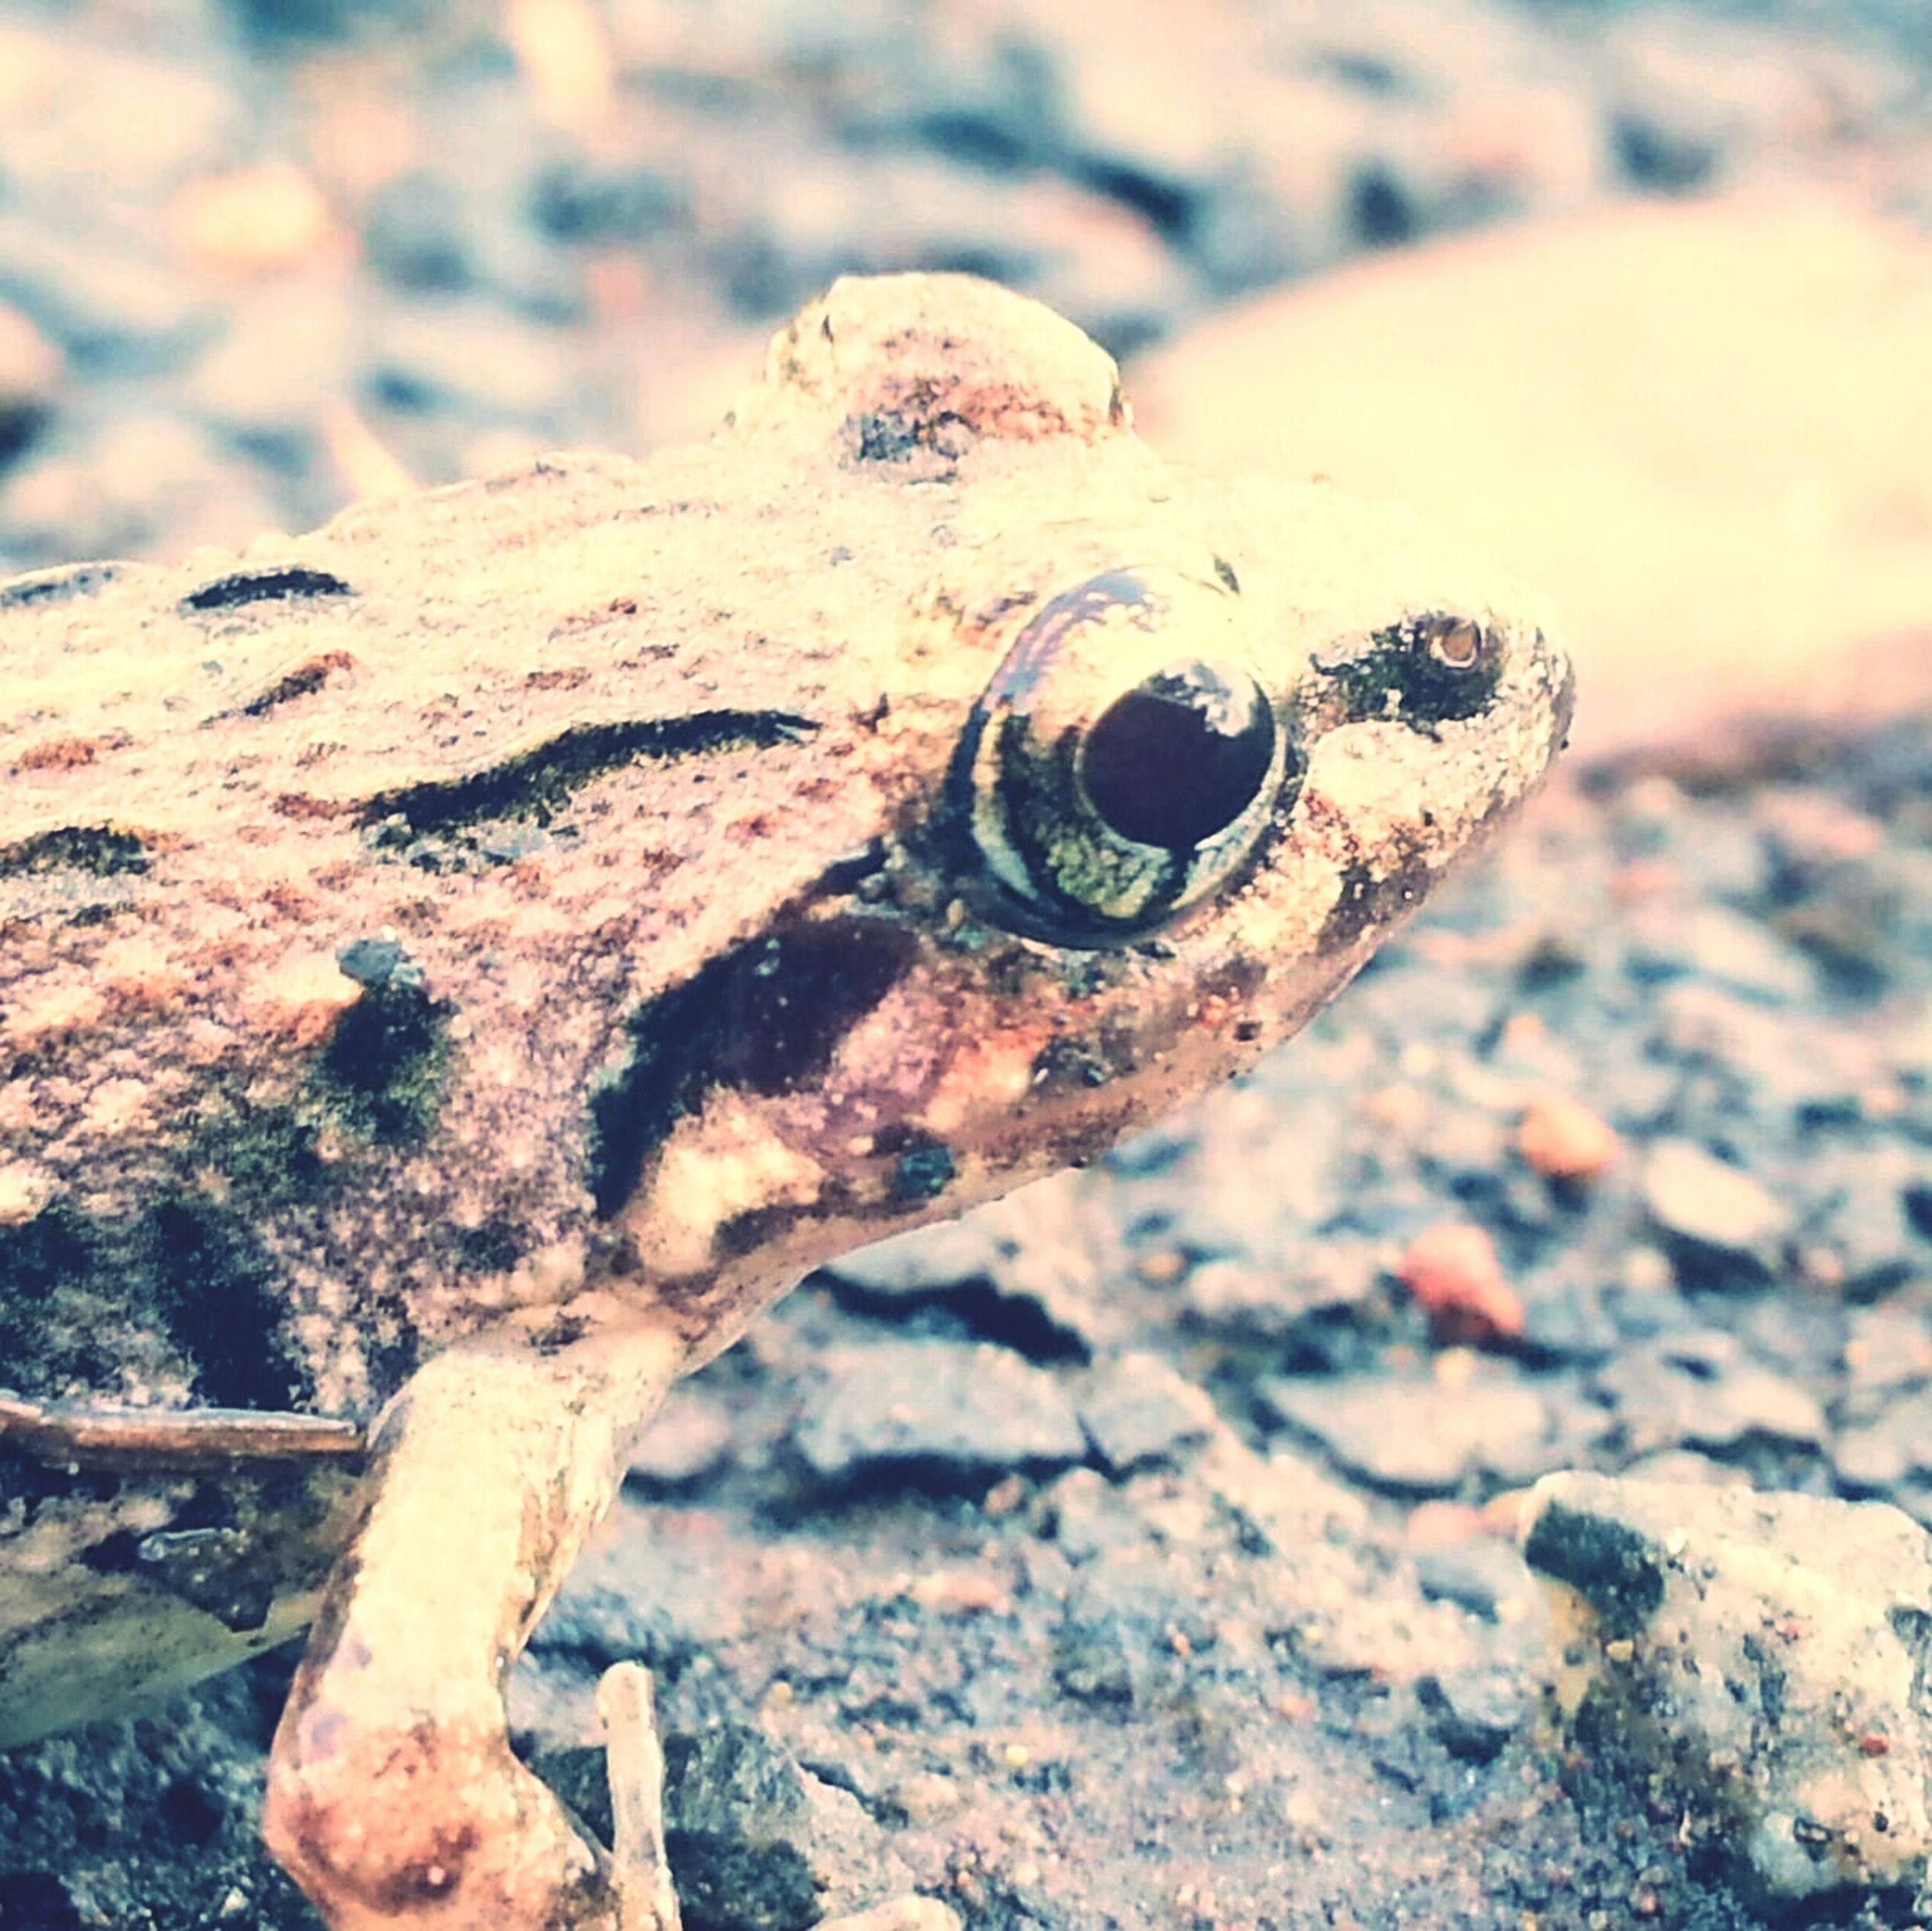 close-up, focus on foreground, metal, rusty, one animal, outdoors, animal themes, day, rock - object, metallic, no people, old, weathered, sunlight, nature, abandoned, part of, animals in the wild, damaged, reptile